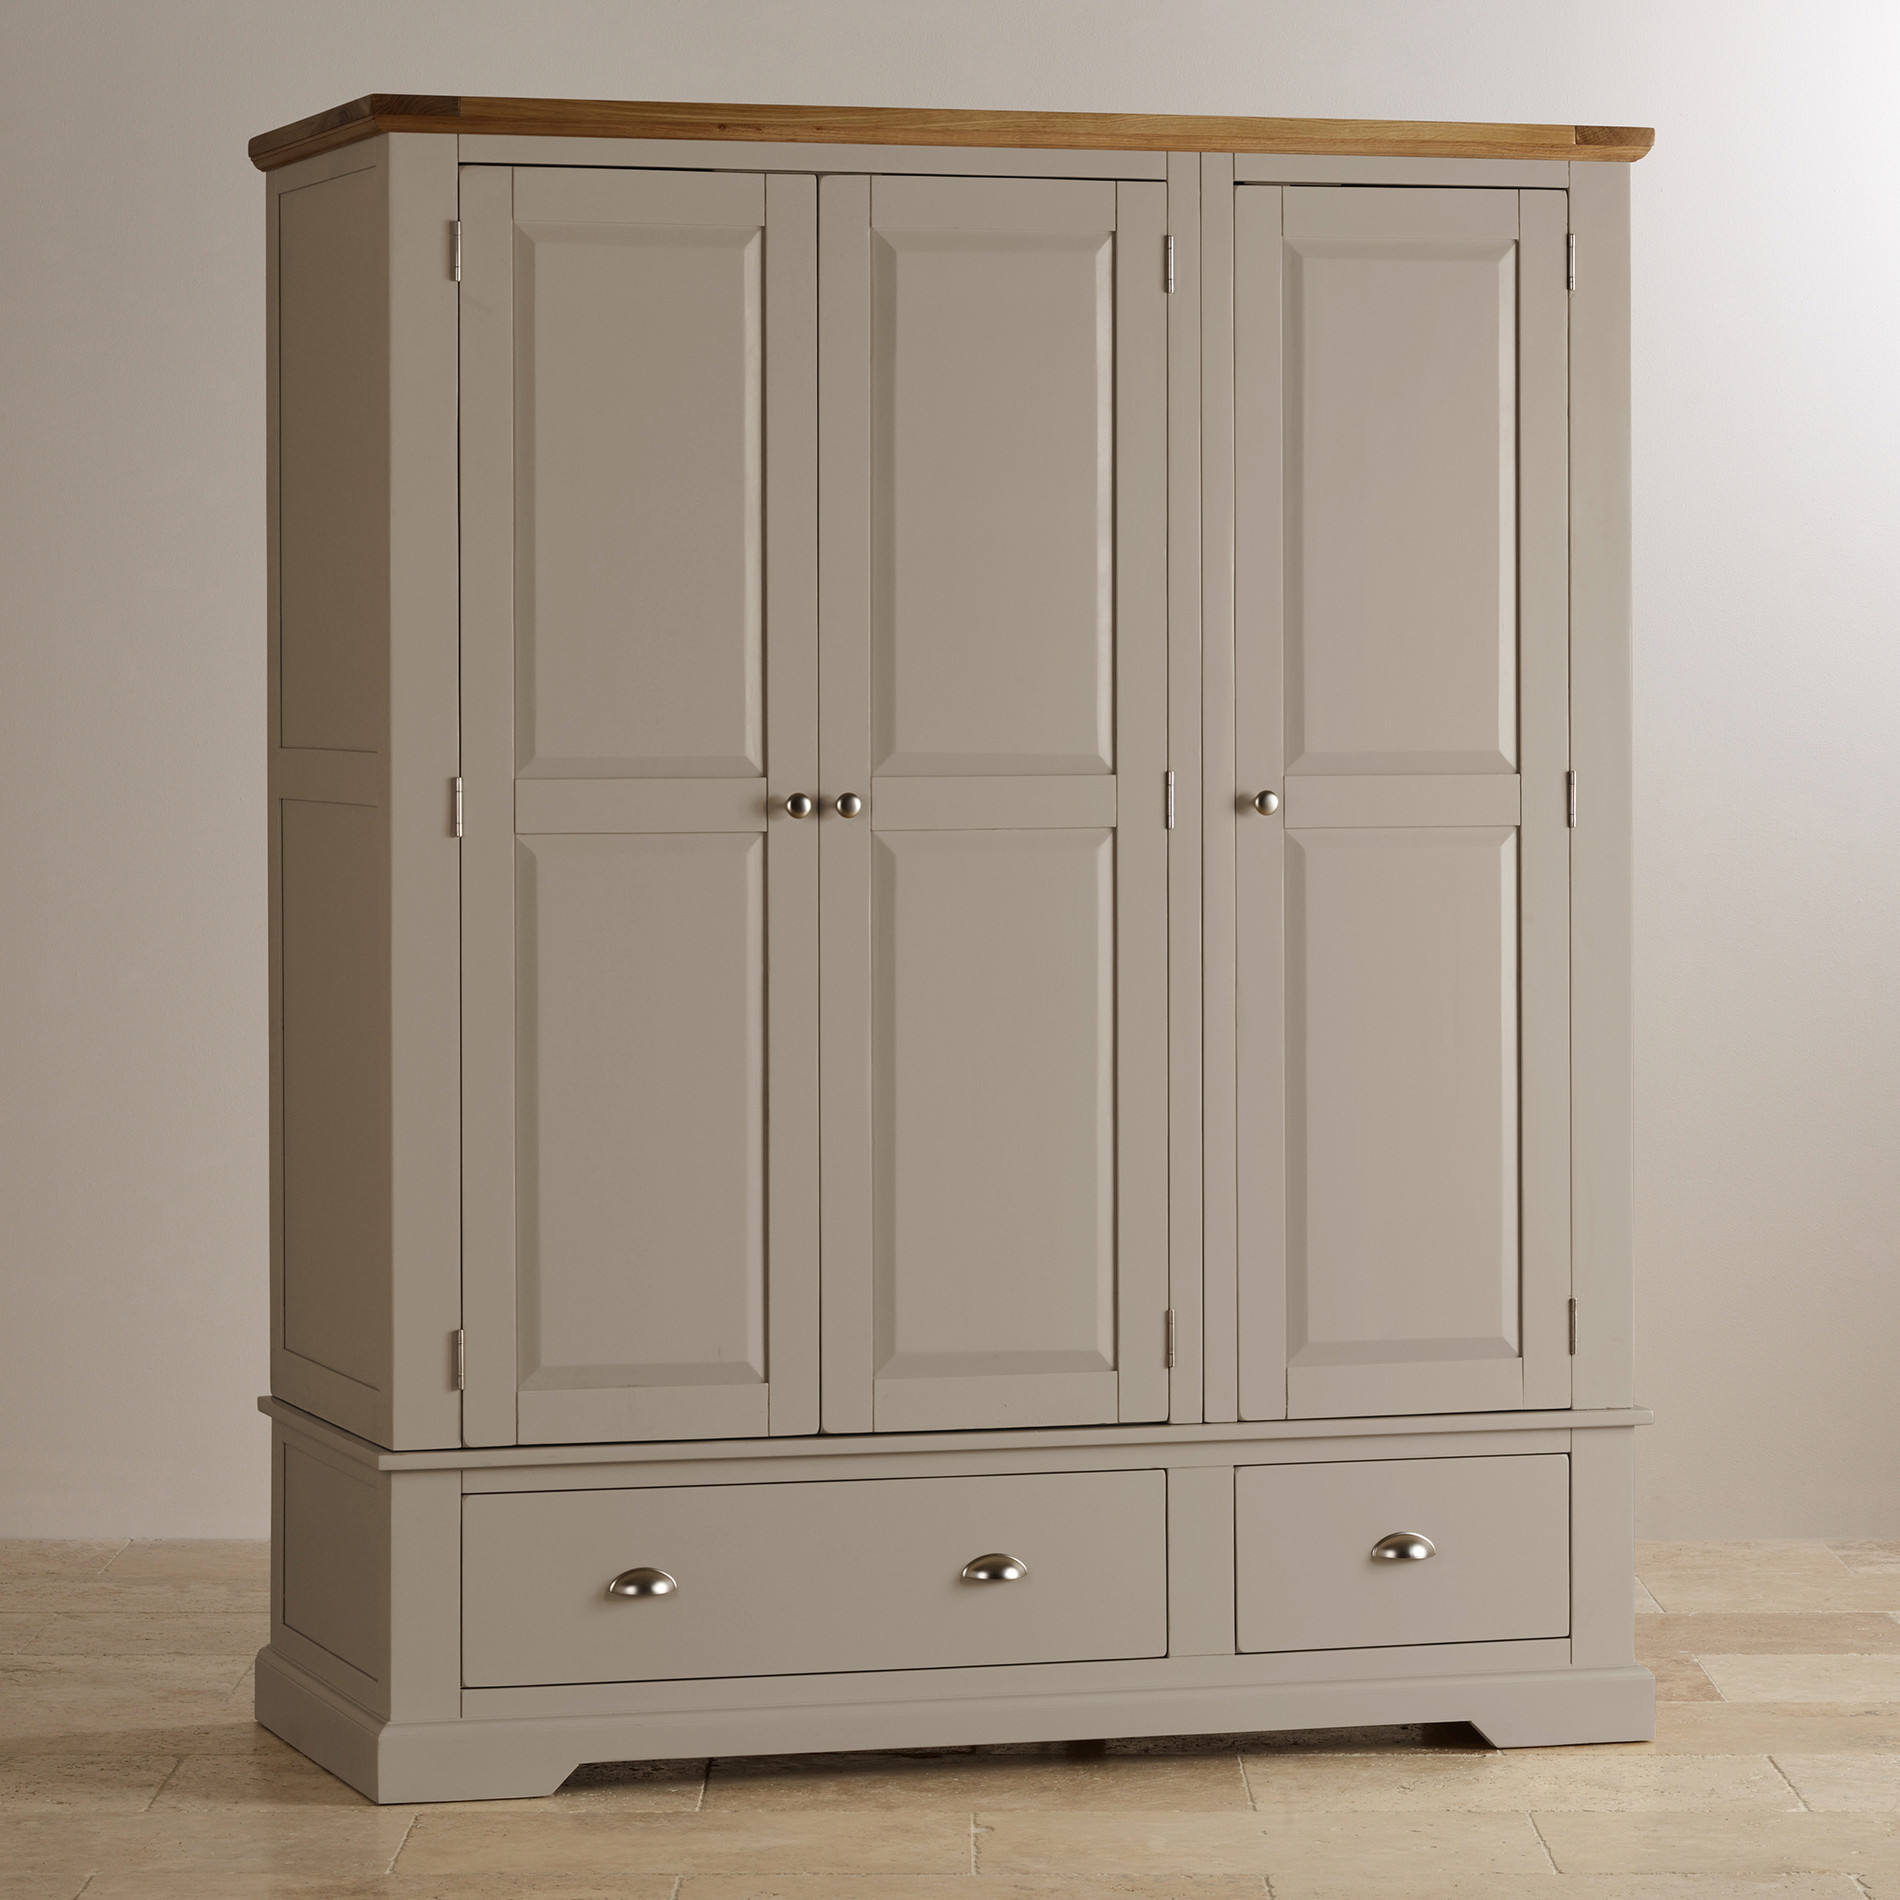 Oak Dining Room Furniture St Ives Grey Painted Triple Wardrobe In Natural Oak